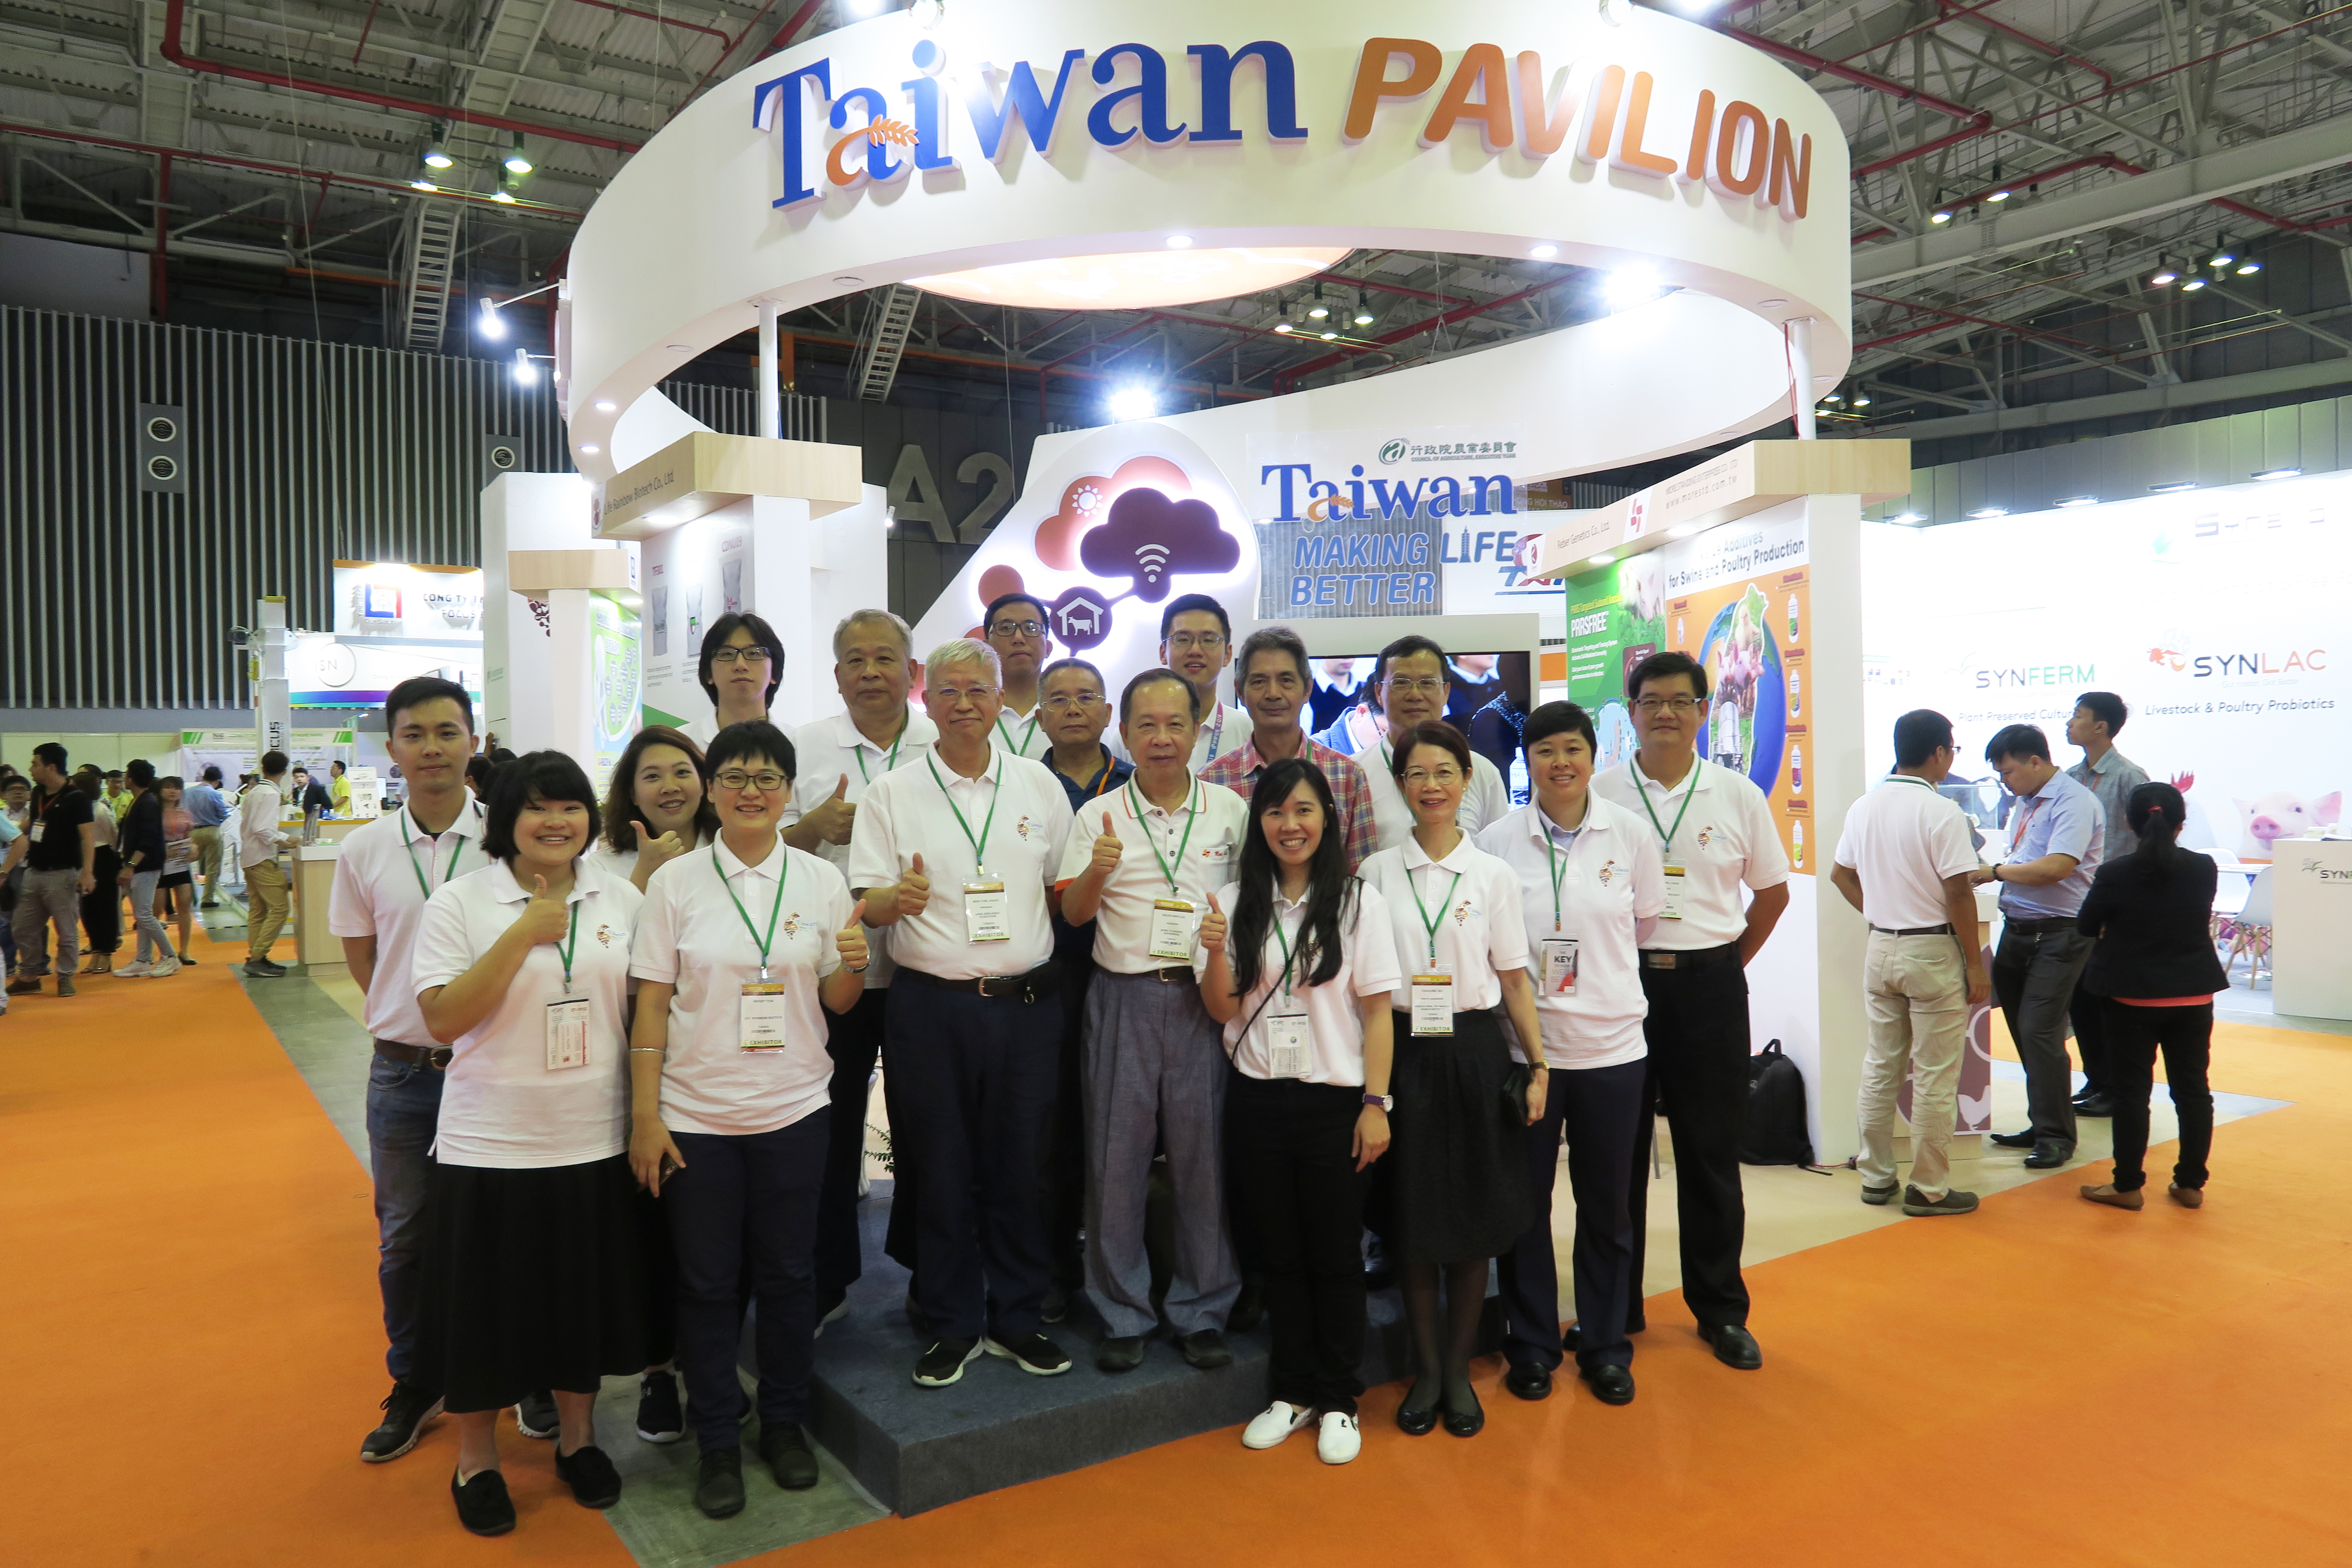 Taiwan companies promote biotech products at Vietstock 2018 exhibit